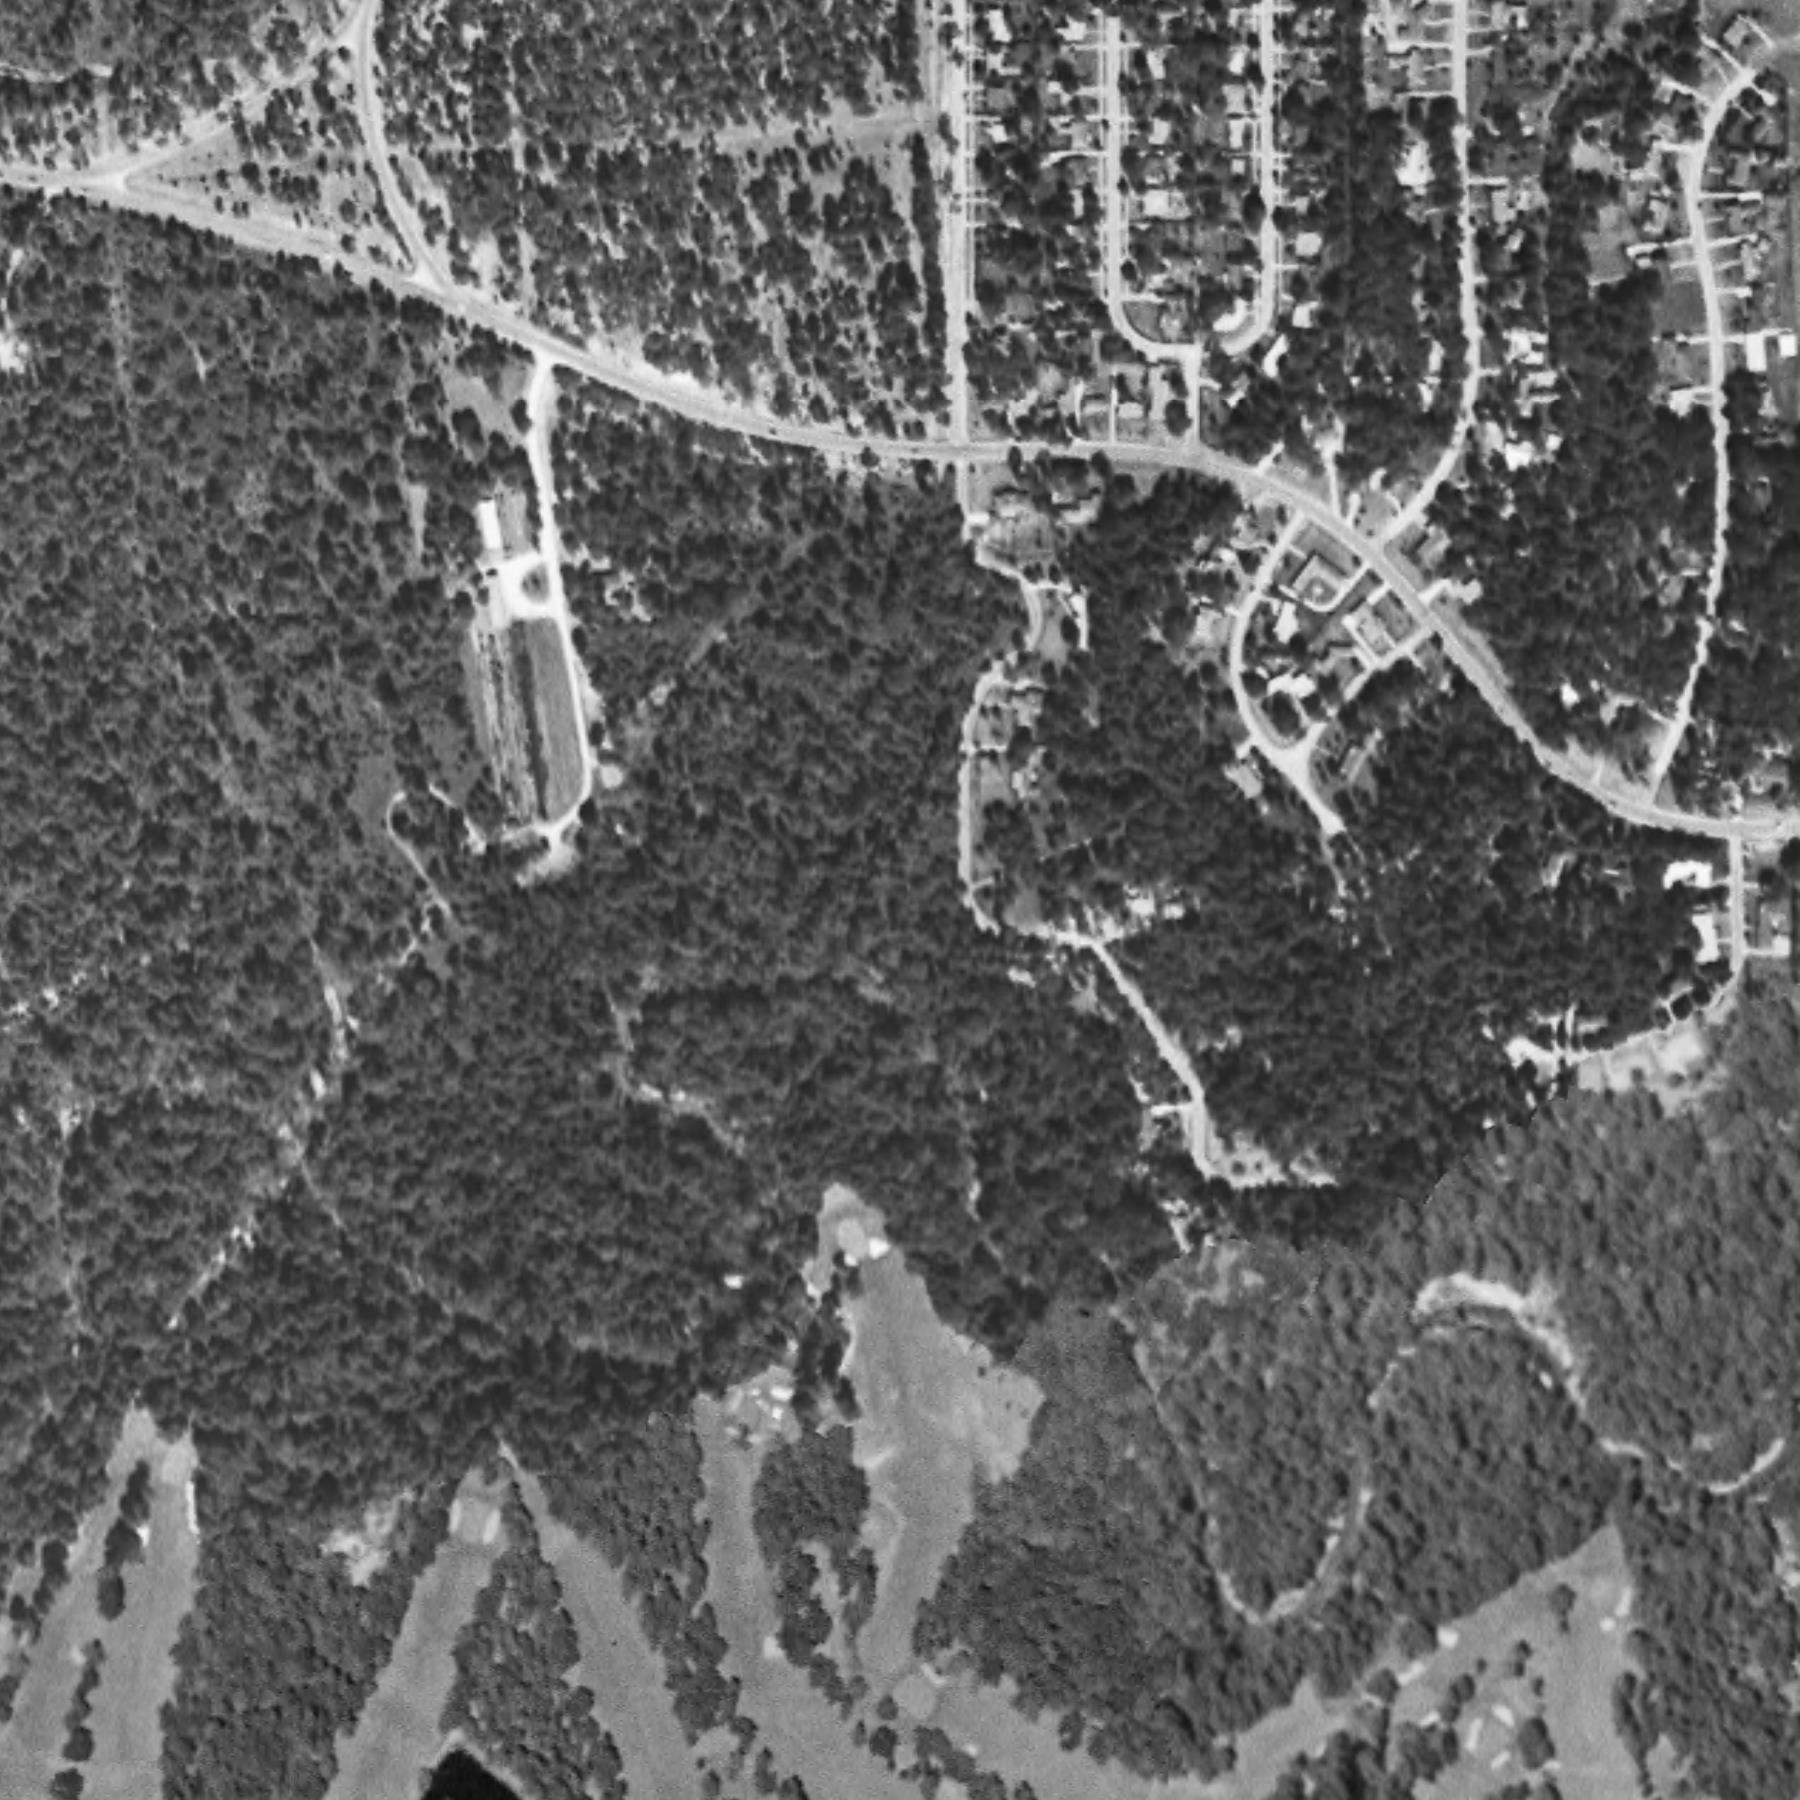 An aerial taken in 1953 of the bayou and surrounding riparian forest in the project area.